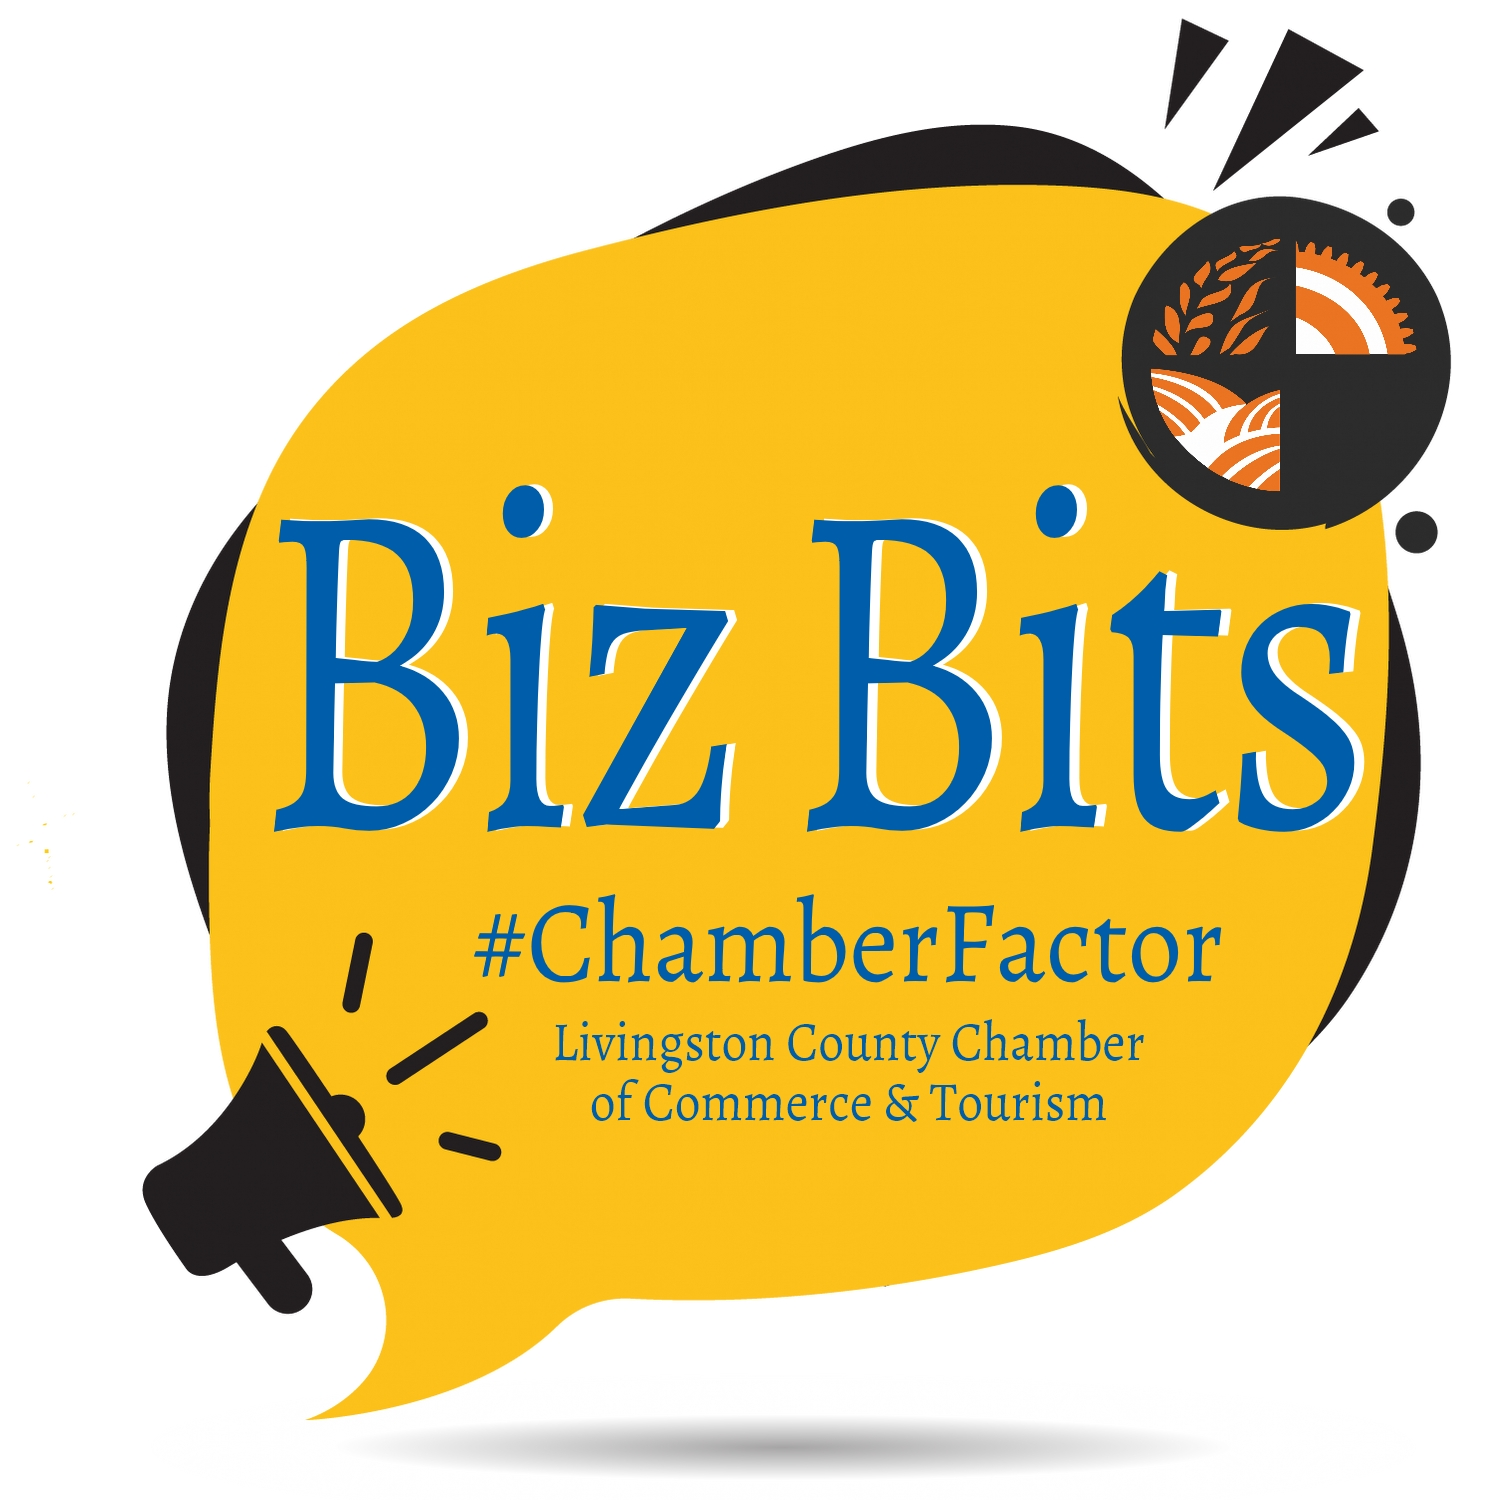 Chamber Member, Chamber Factor, Business News, Shop Local, Livingston County Chamber of Commerce & Tourism Blog, Resources, Updates, Press Release